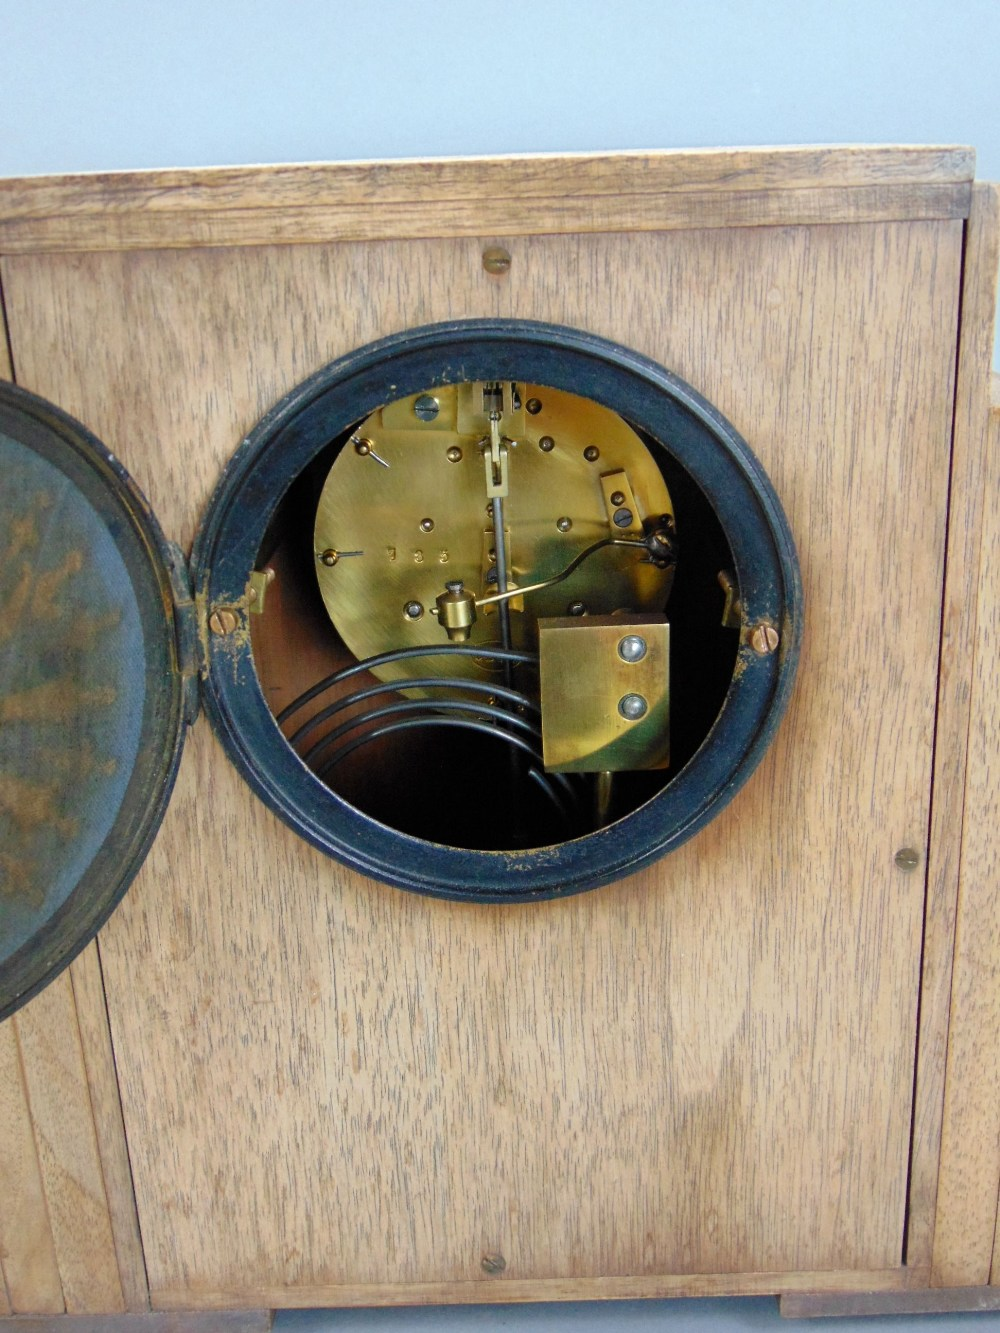 Art Deco walnut cased twin train mantels clock, with enamel chapter ring, arabic numerals, - Image 3 of 3